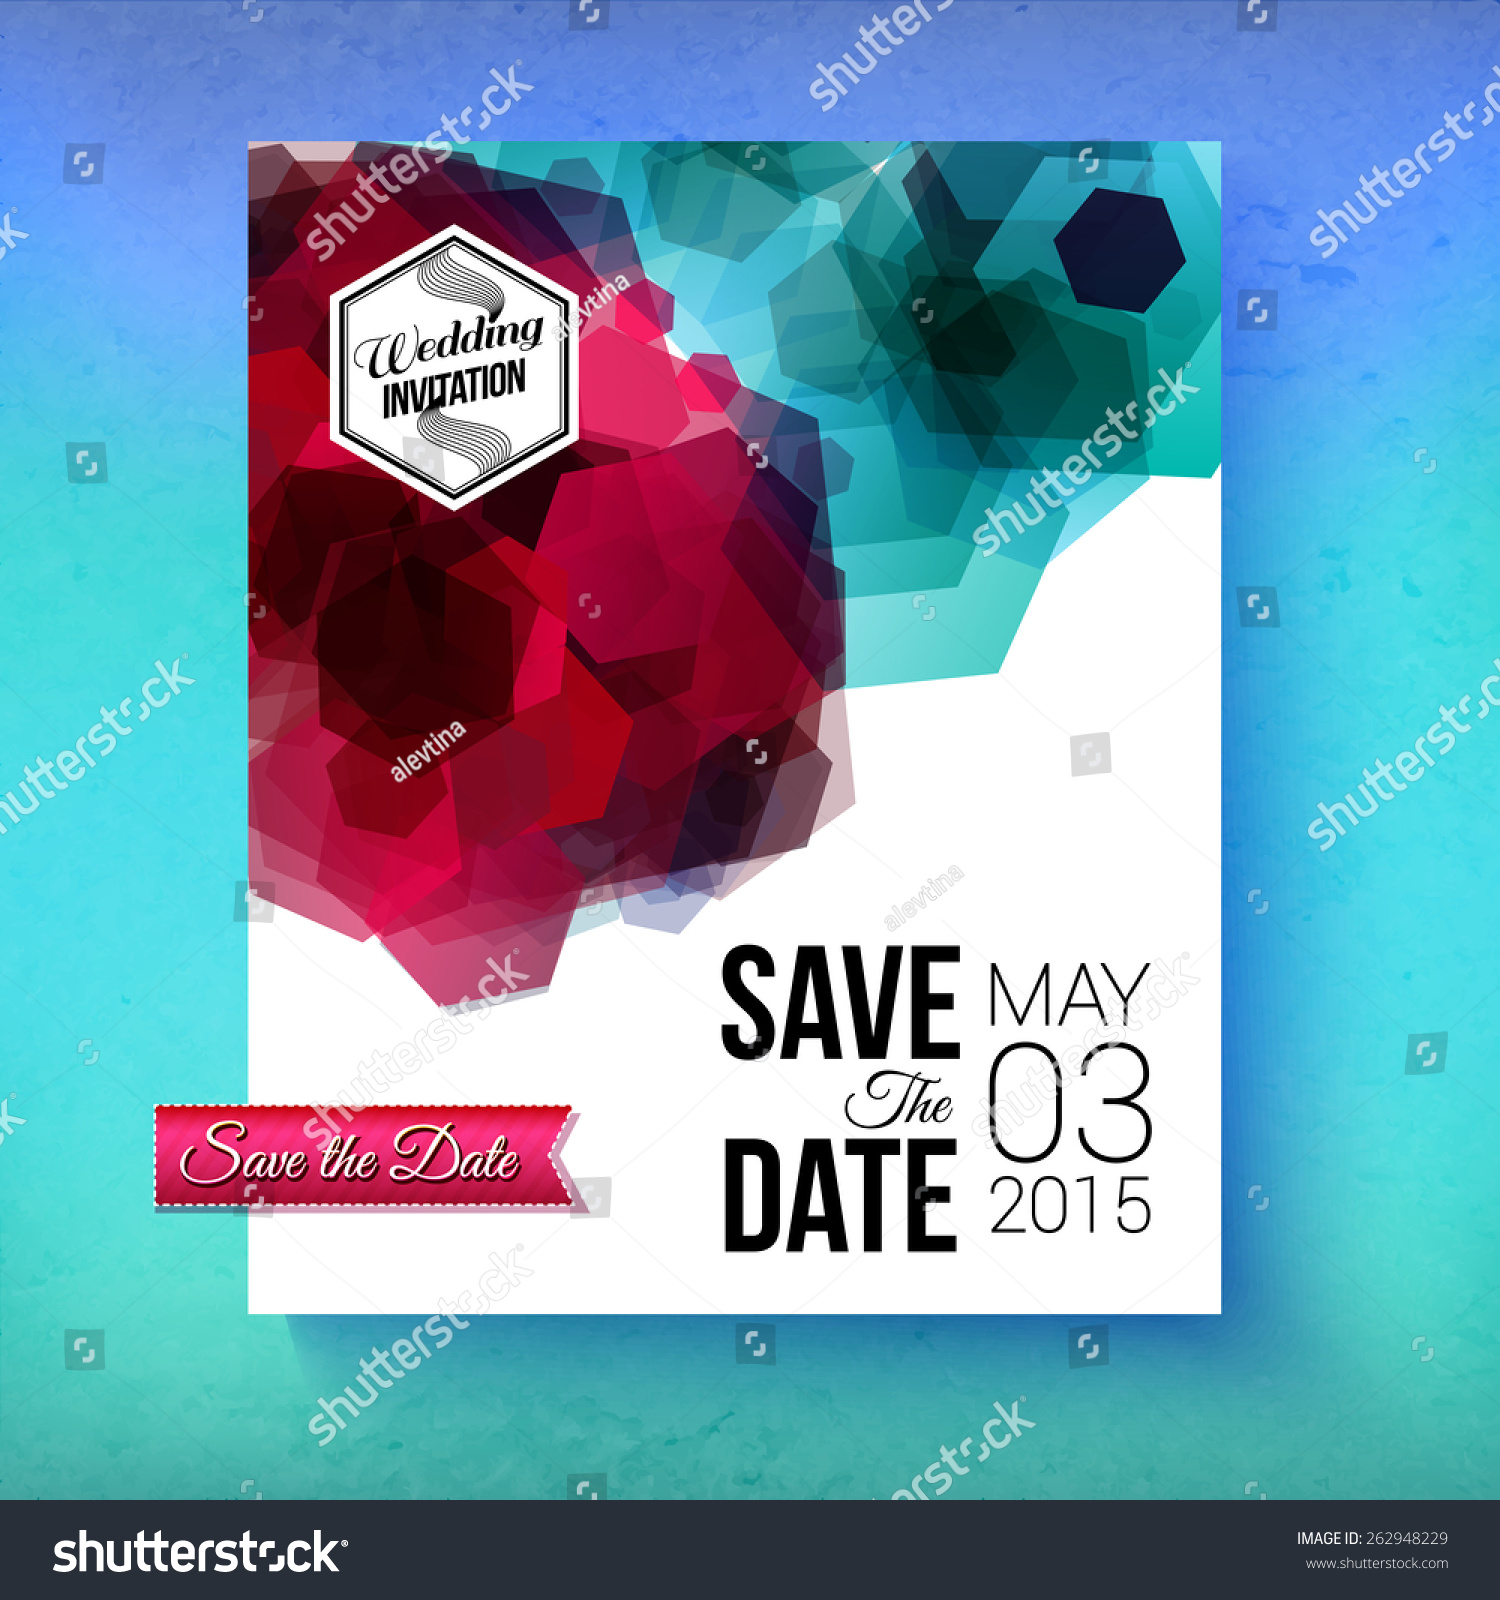 Artistic Romantic Save Date Wedding Invitation Stock Vector (Royalty ...